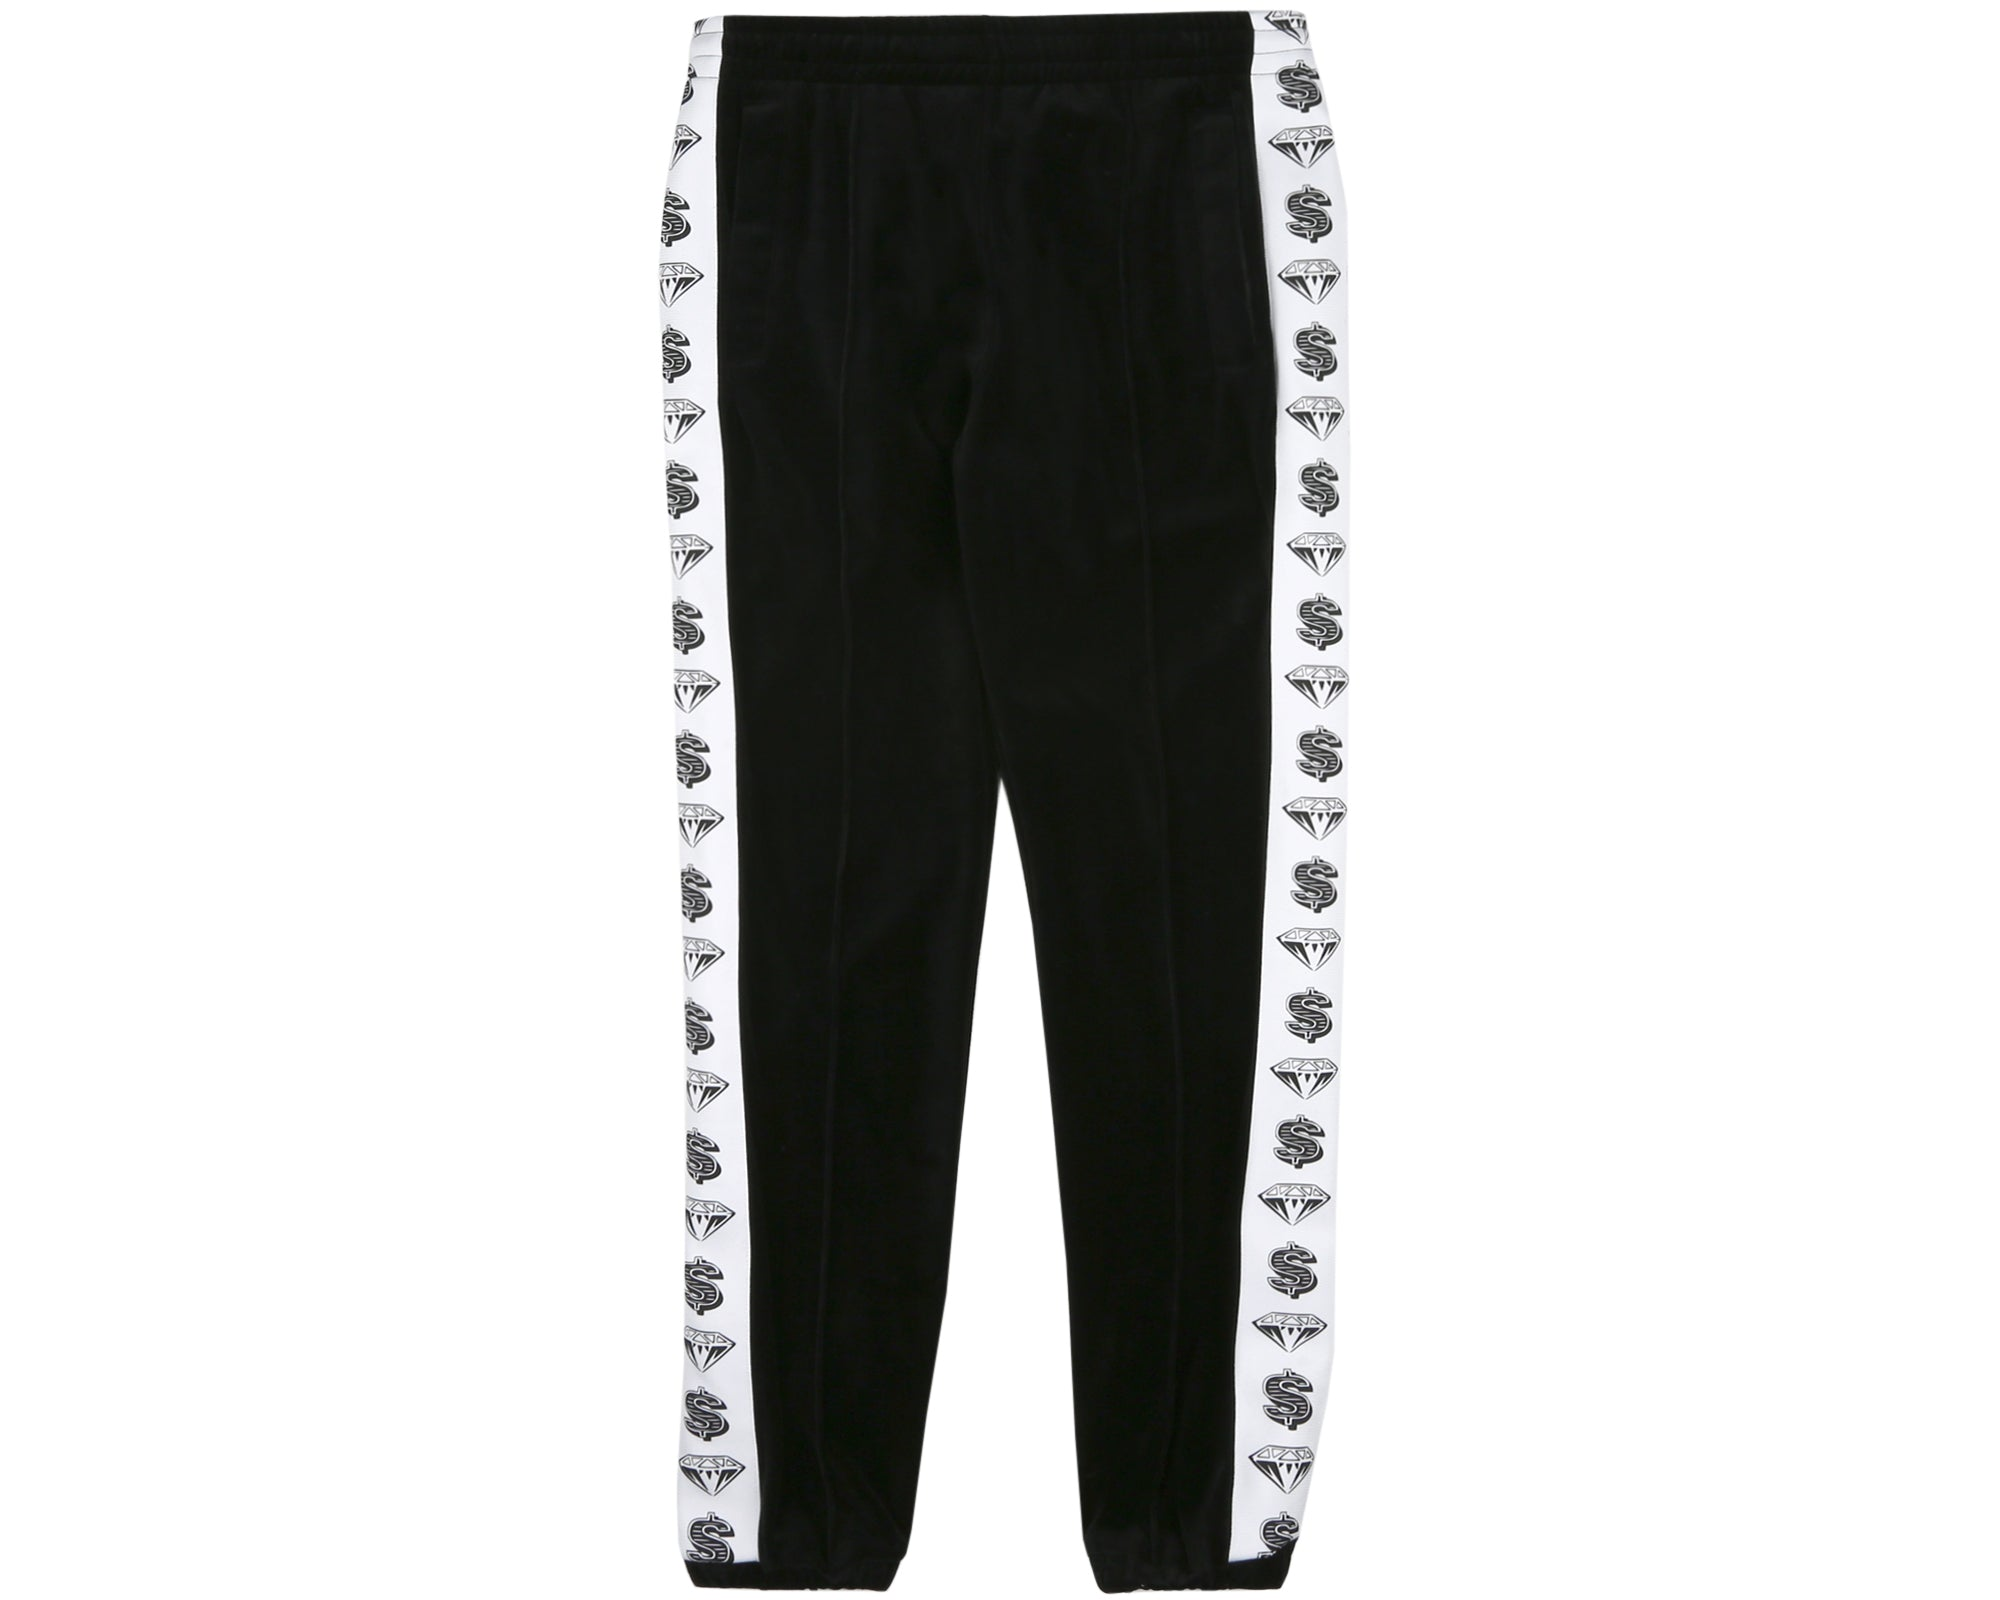 VELOUR TRACK PANTS - BLACK